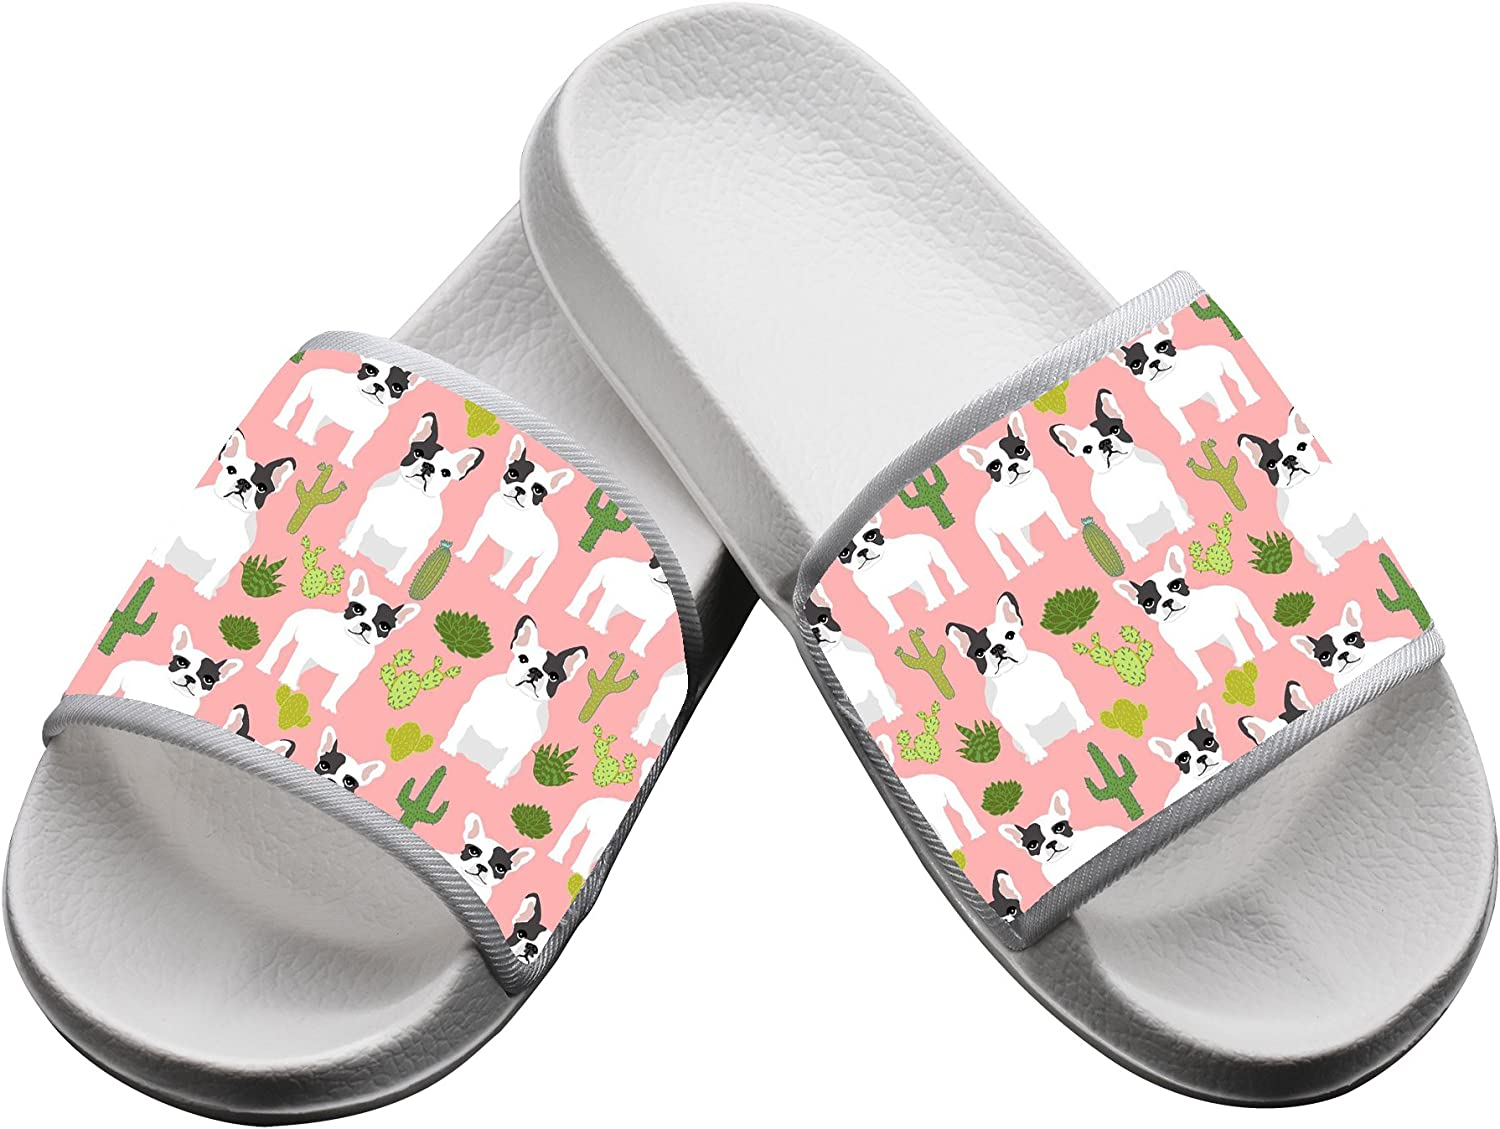 French Bulldog Cactus Summer Slippers Pool Slider Sandals for Mens Womens and Kids Indoor /& Outdoor